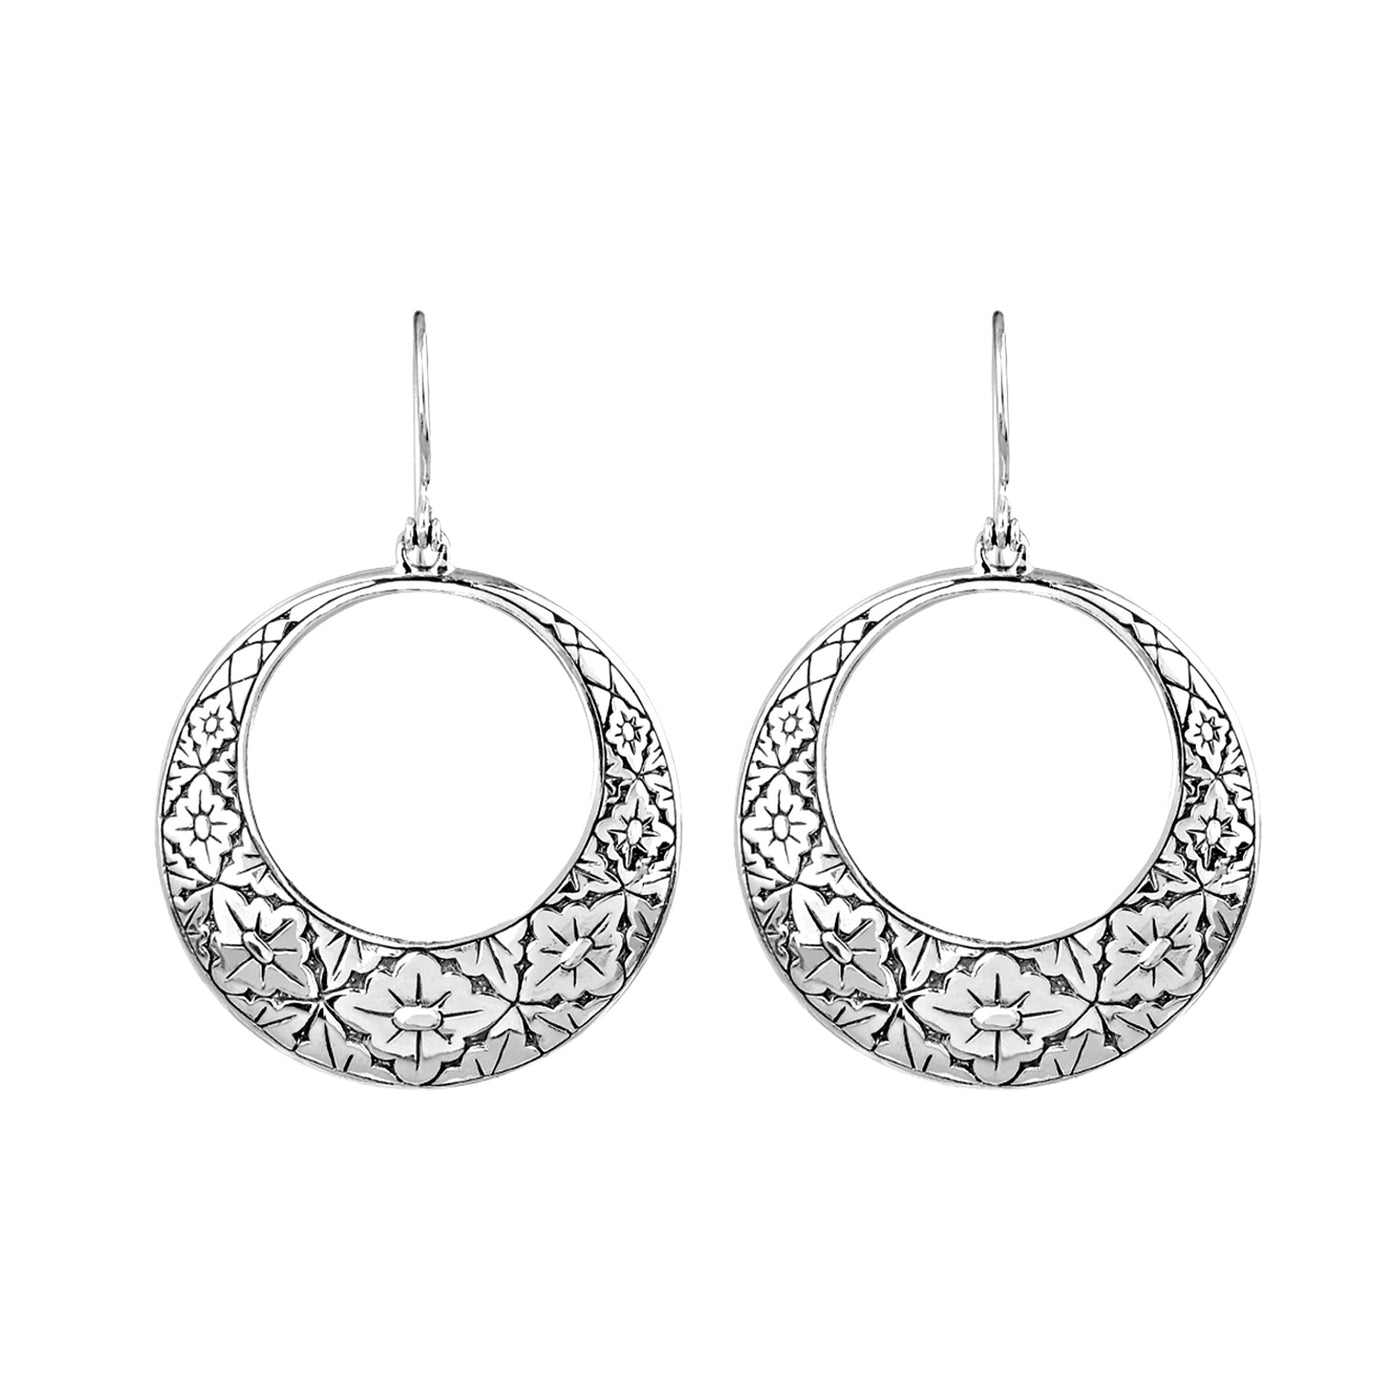 JD E64139 GRADUATED FILIGREE CIRCLE EARRINGS